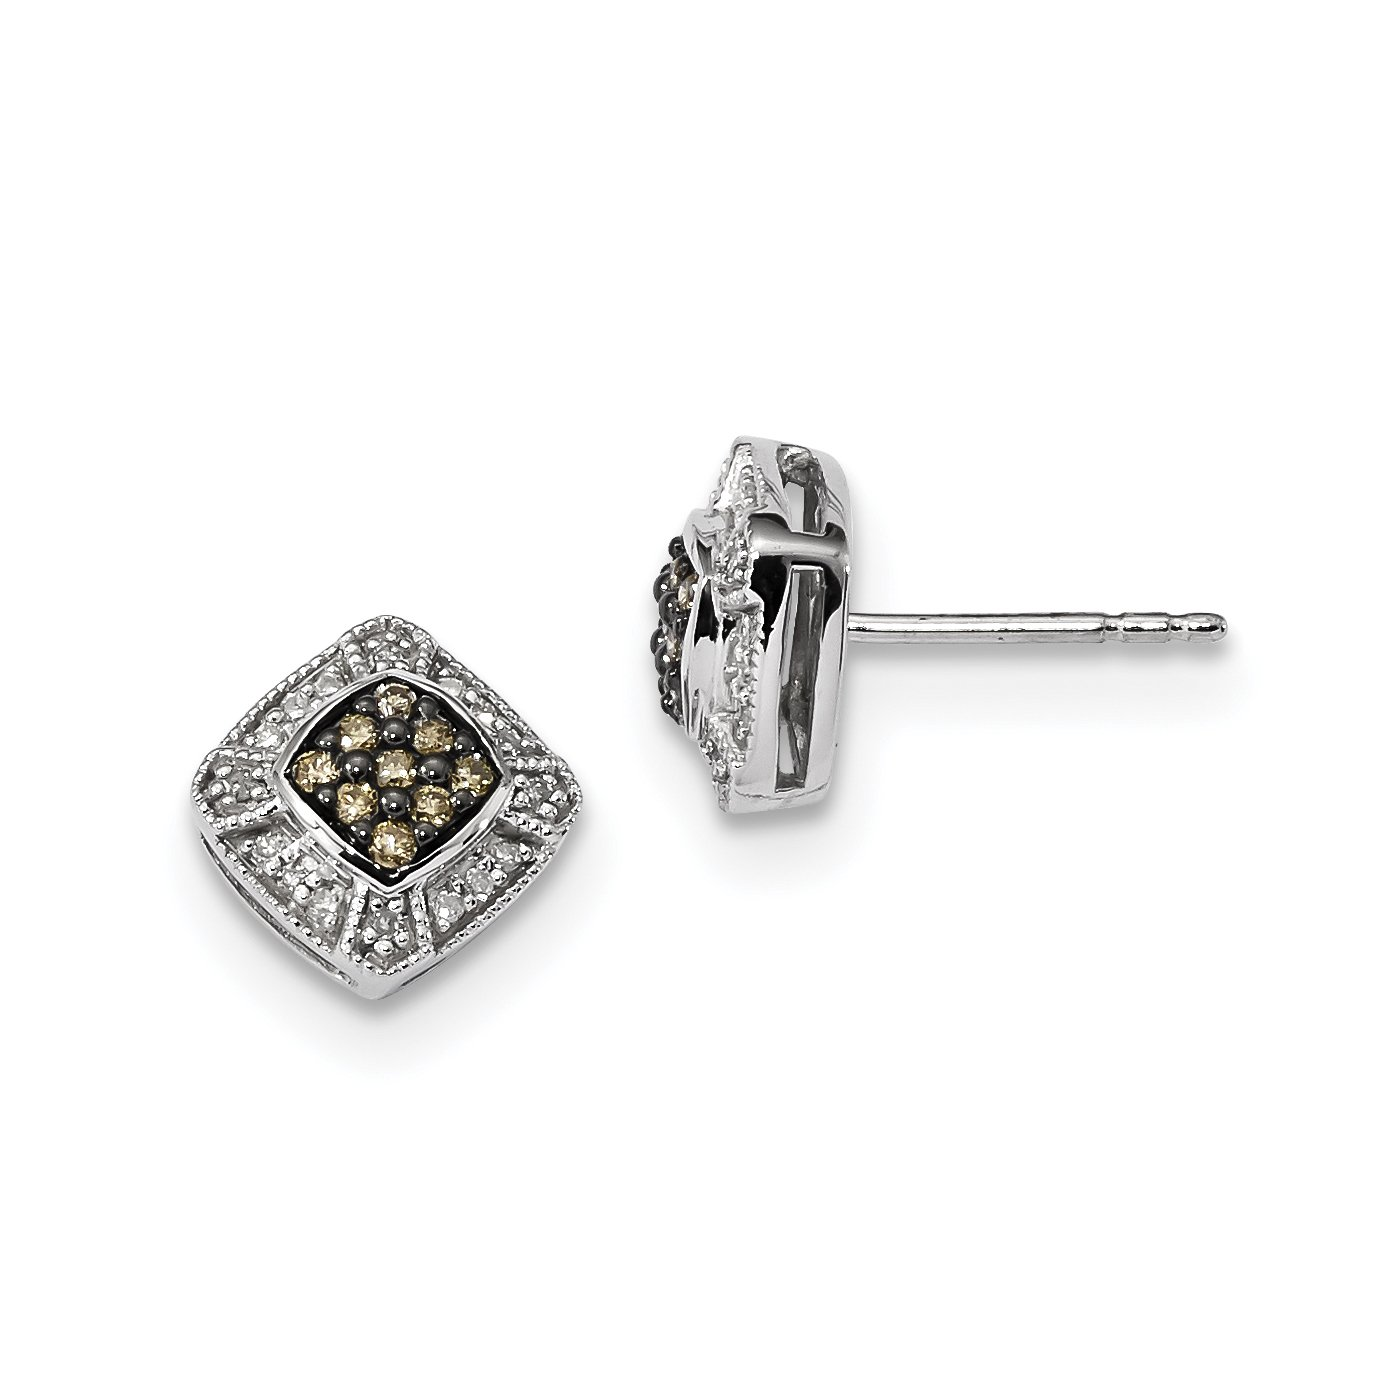 ICE CARATS 925 Sterling Silver Champagne Diamond Small Square Post Stud Ball Button Earrings Fine Jewelry Gift Set For Women Heart